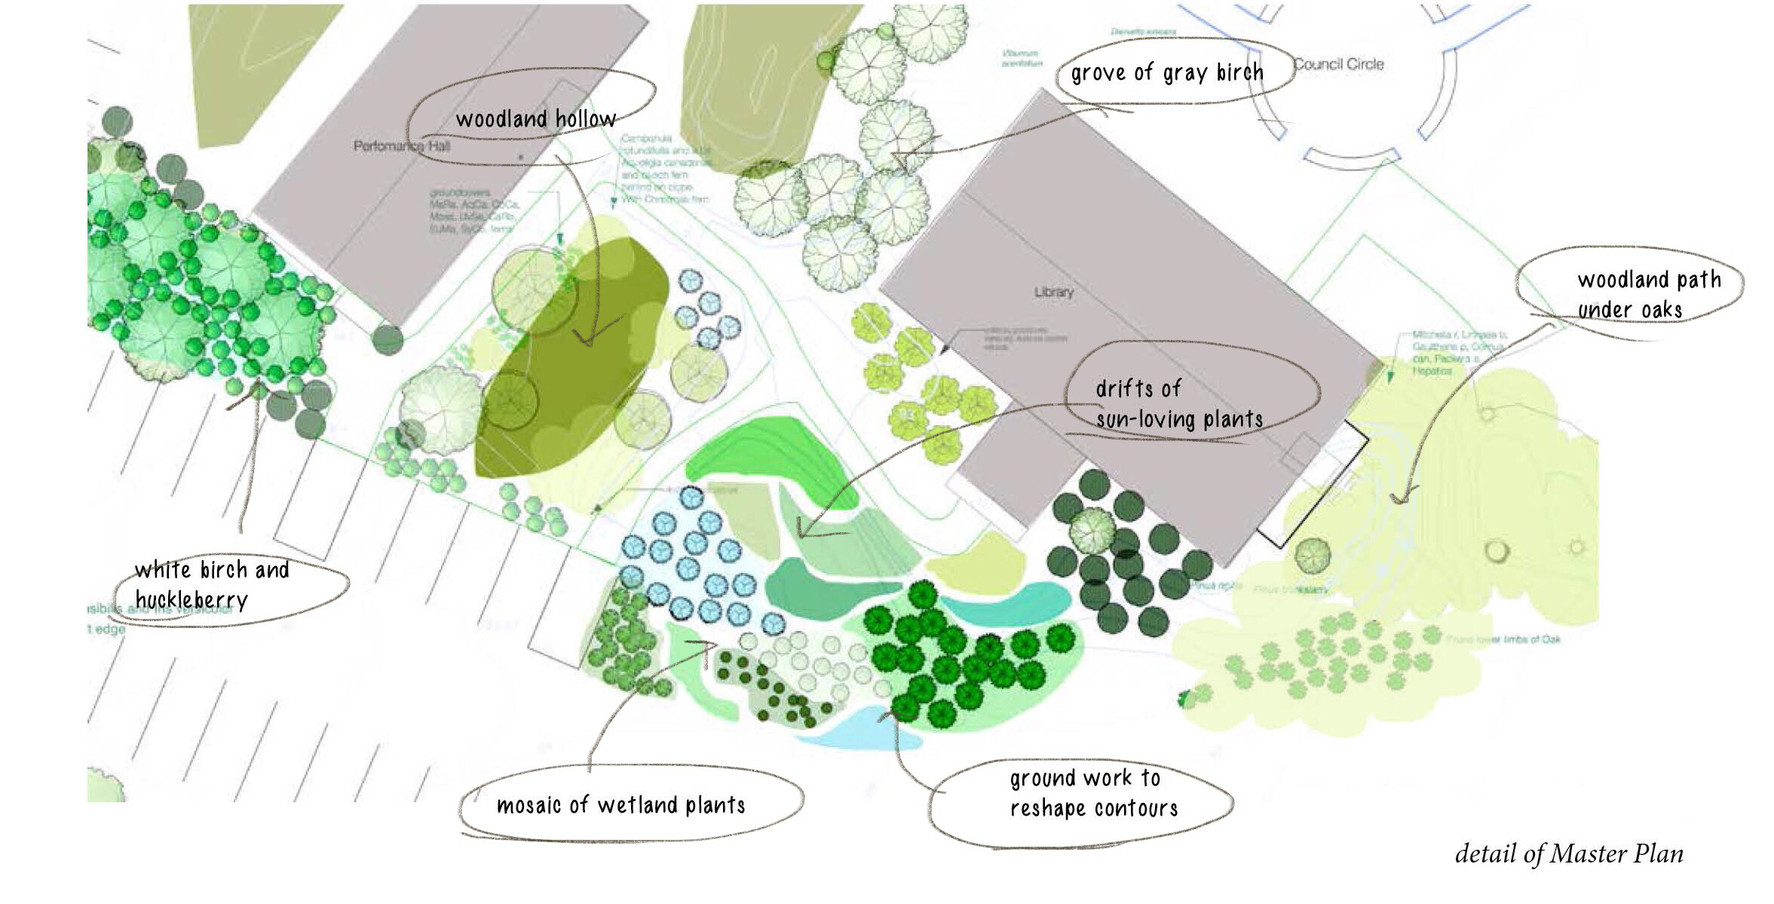 Overview of the plan for the Library Garden